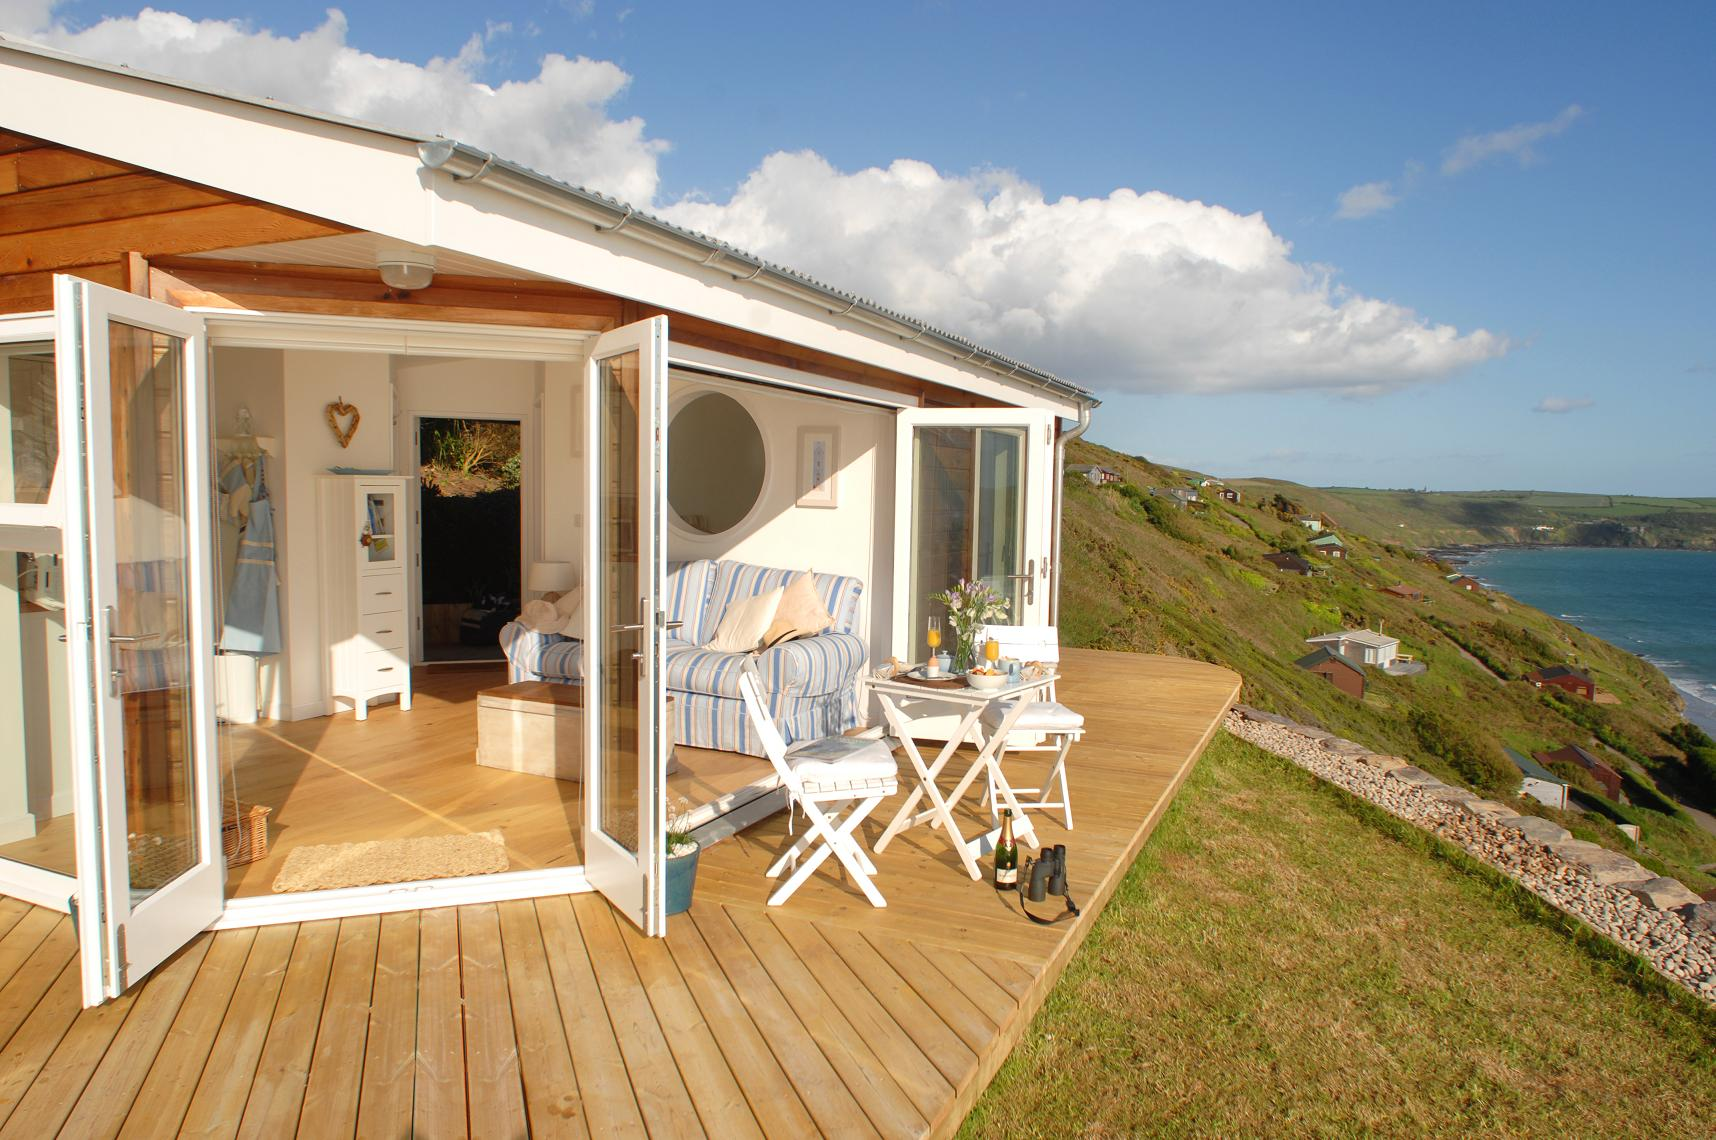 Gallery the edge an idyllic beach cottage in cornwall for Small beach cottage